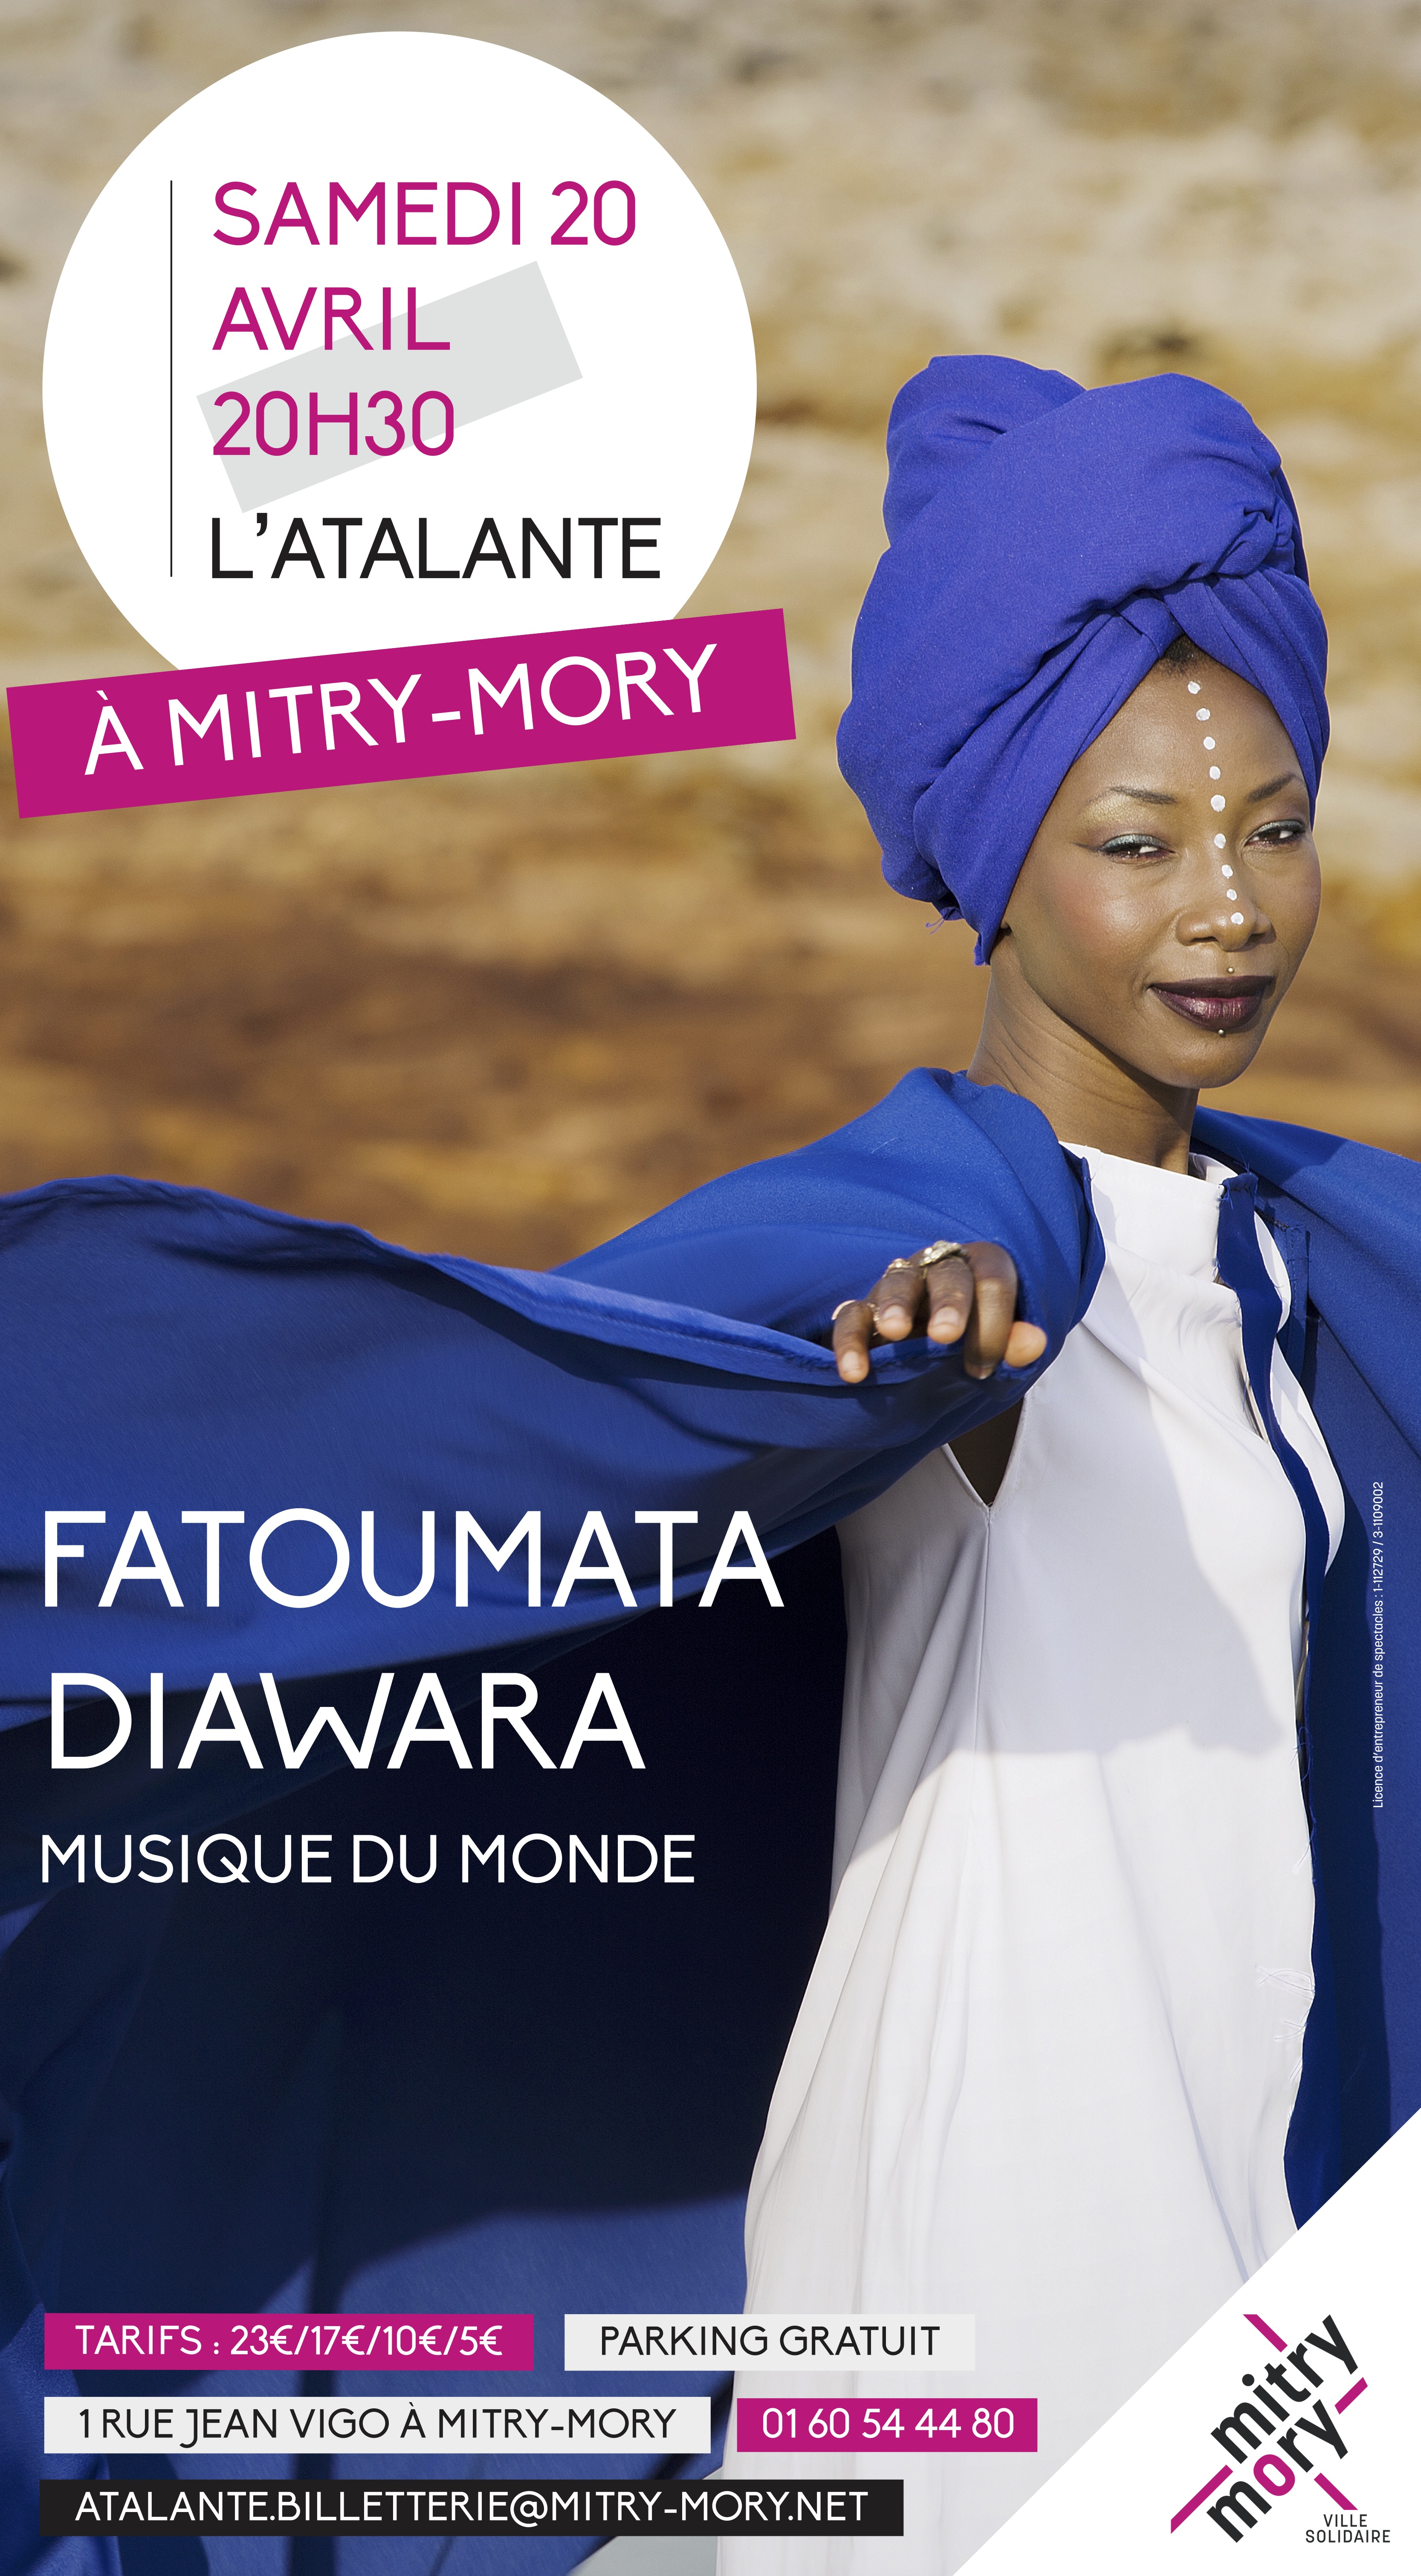 Fatoumata Diawara, Atalante, Mitry Mory, Musique du Monde, Paris Jazz Club,